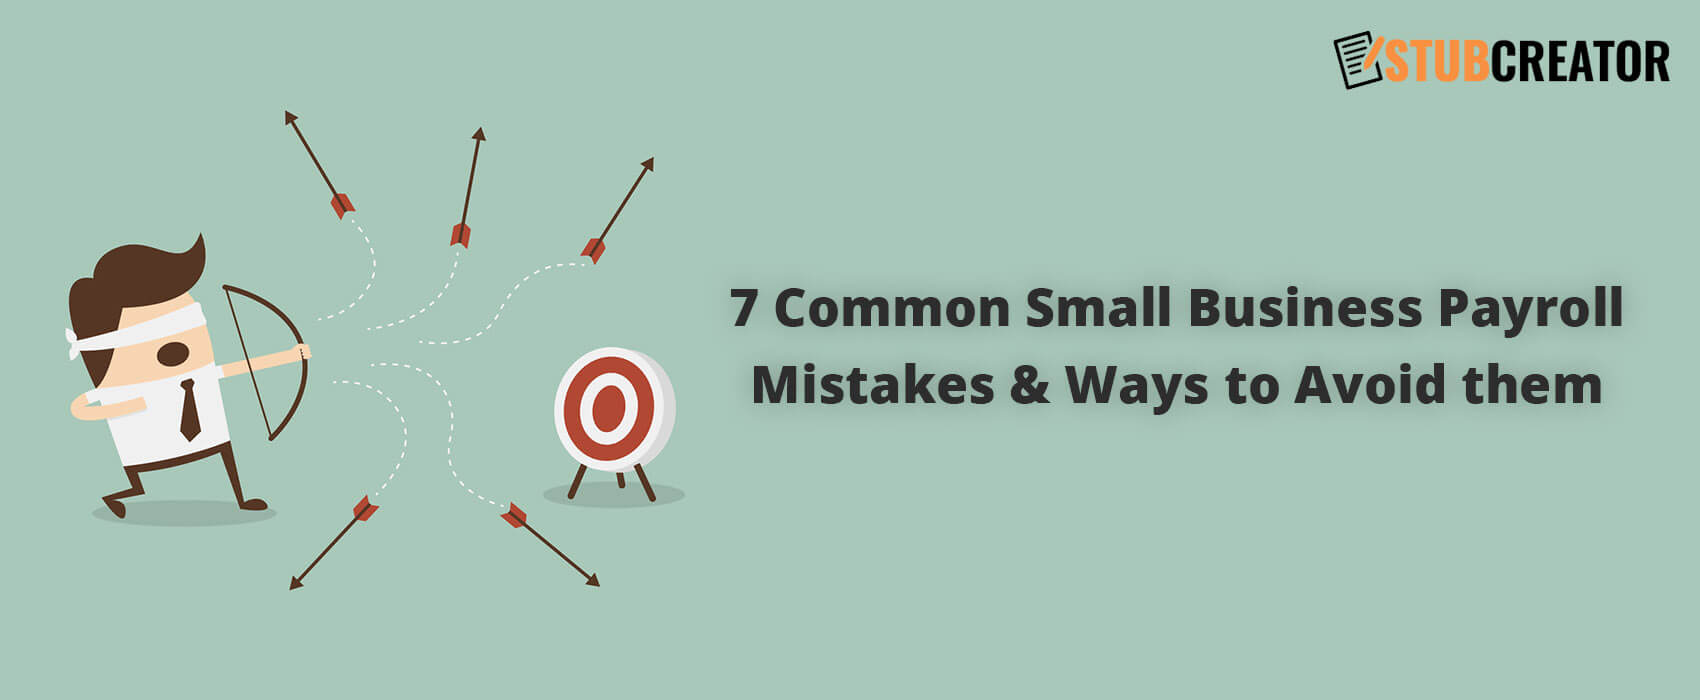 7-common-payroll-mistakes-how-to-avoid-them-blog-stubcreator